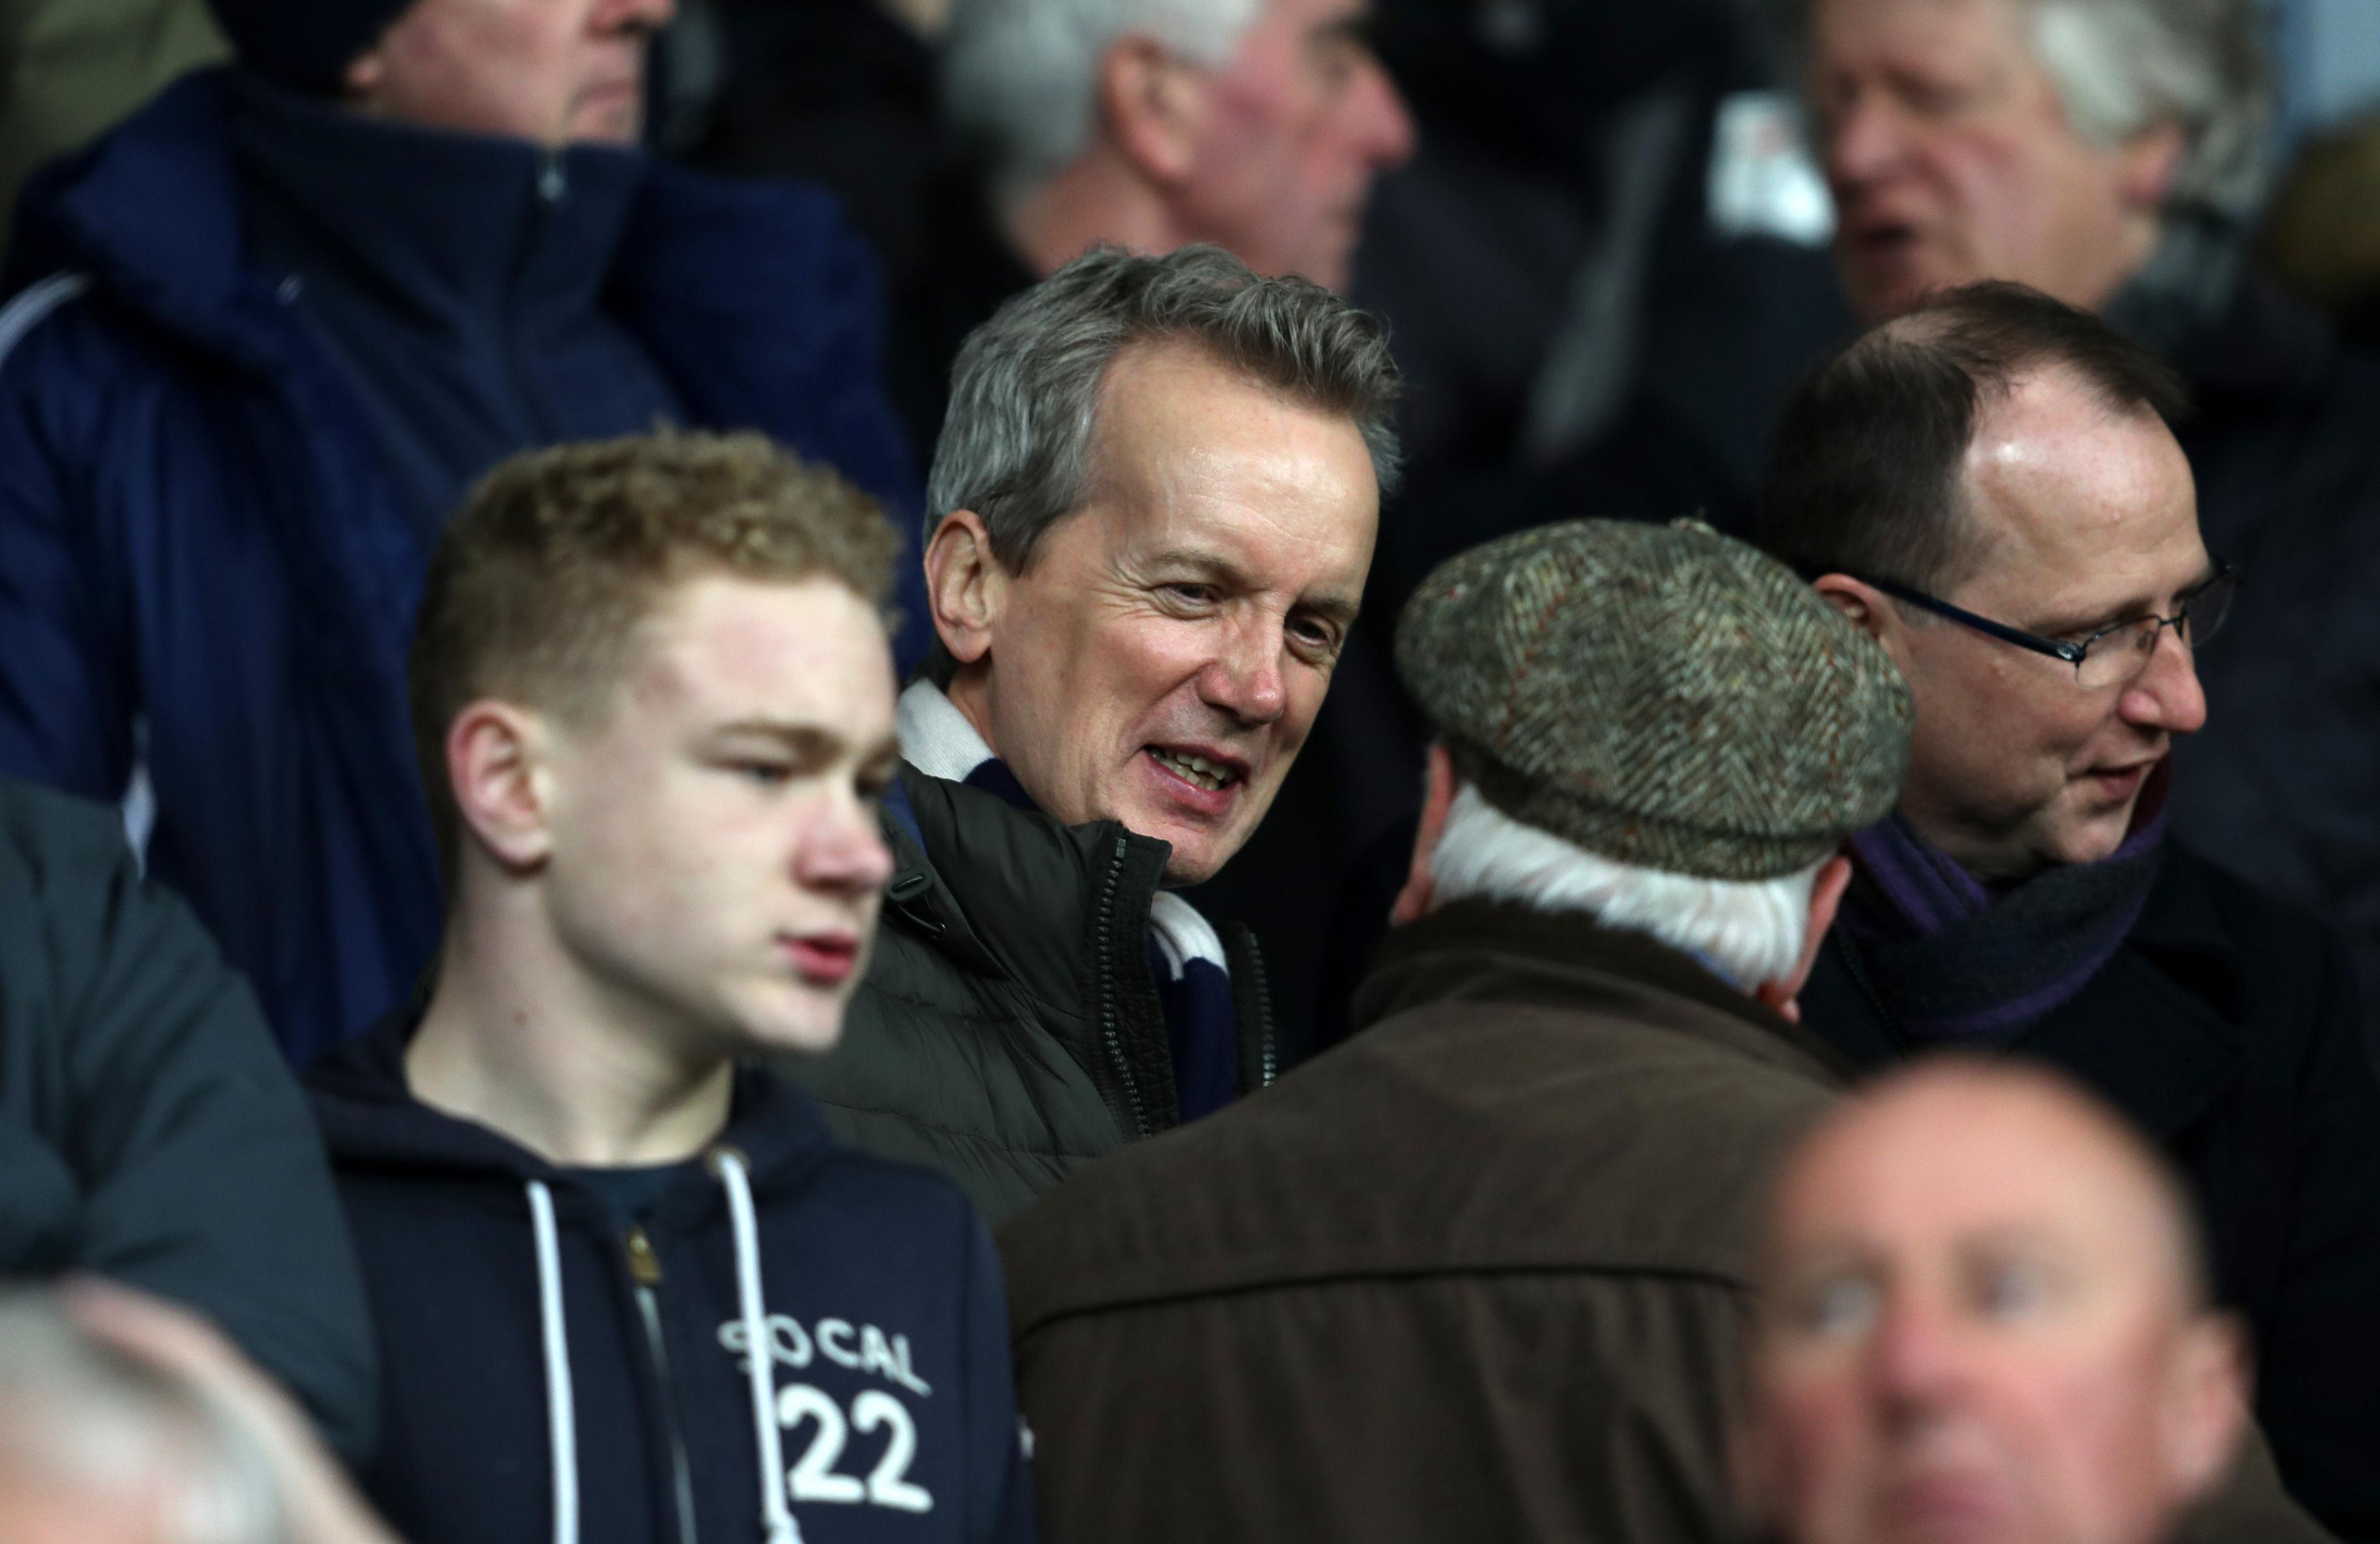 A familiar face - West Bromwich Albion fan Frank Skinner in stands.